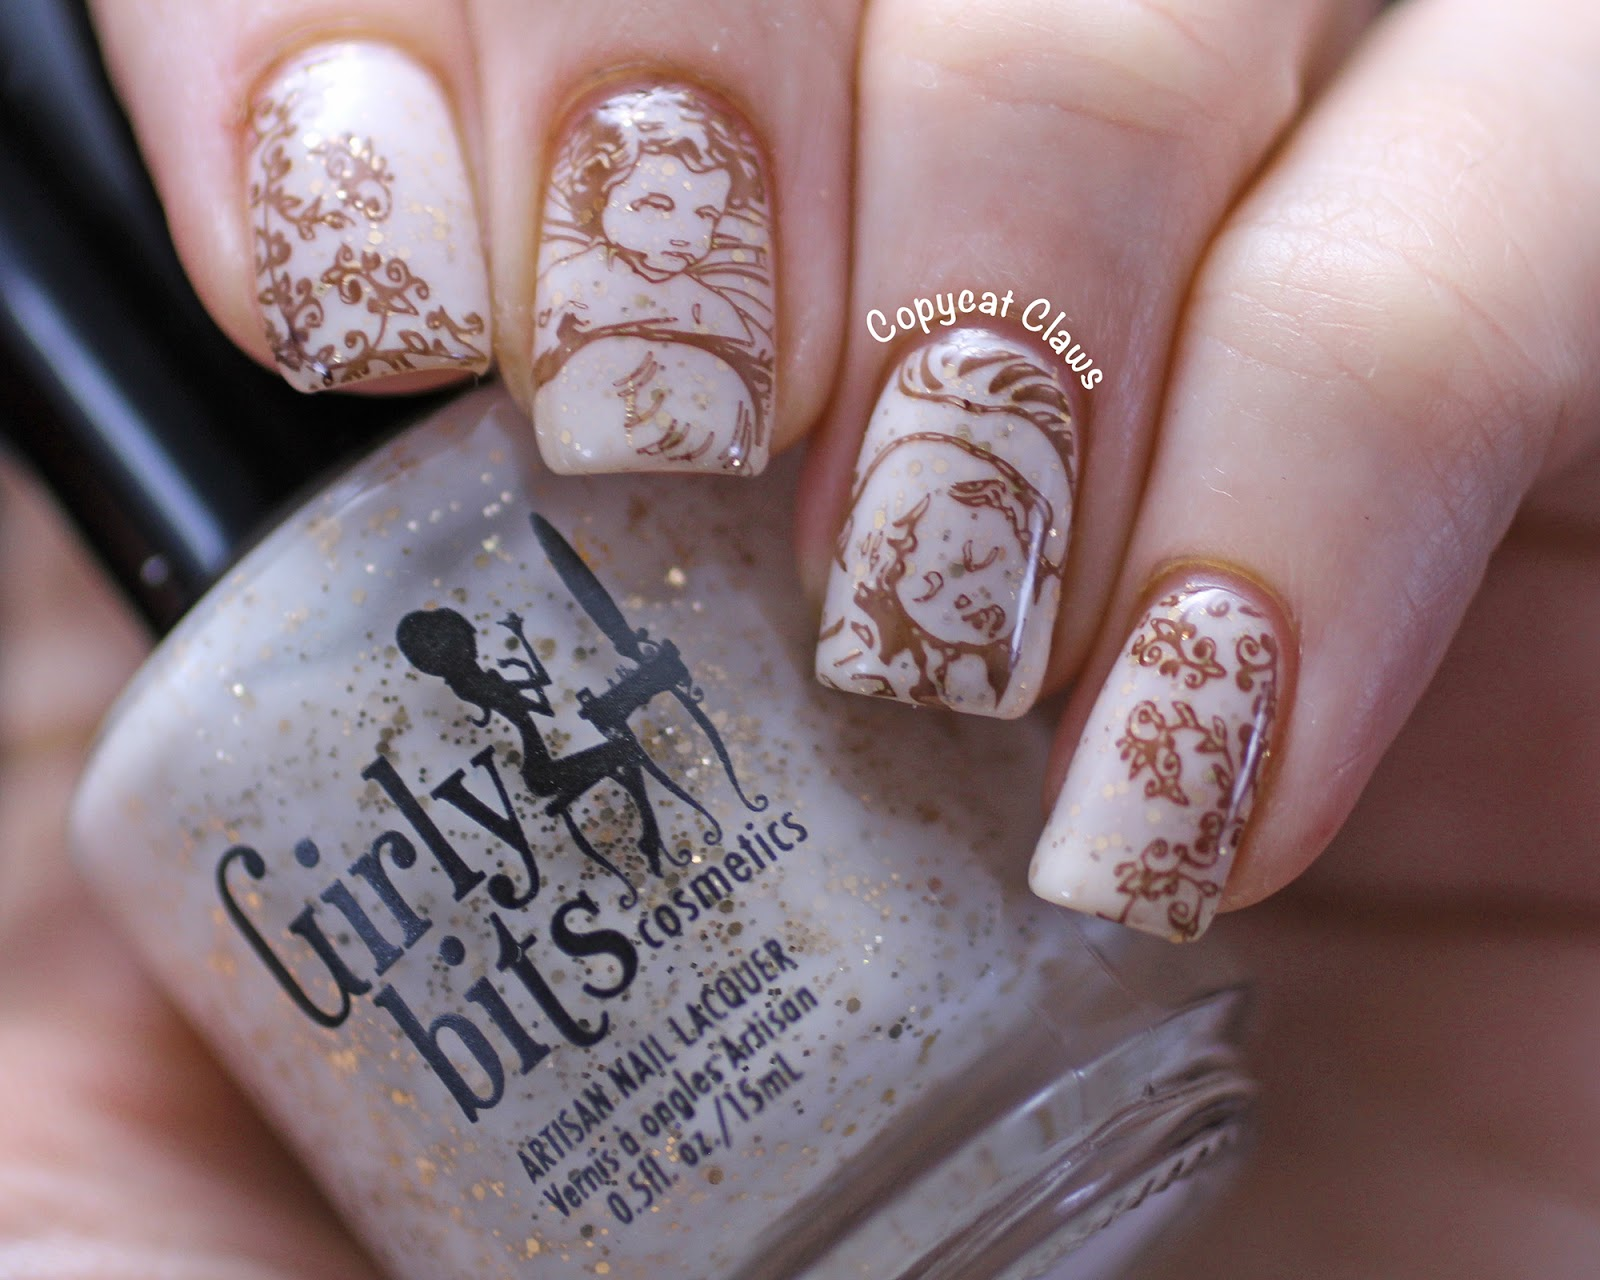 Copycat Claws Renaissance Angel Stamping